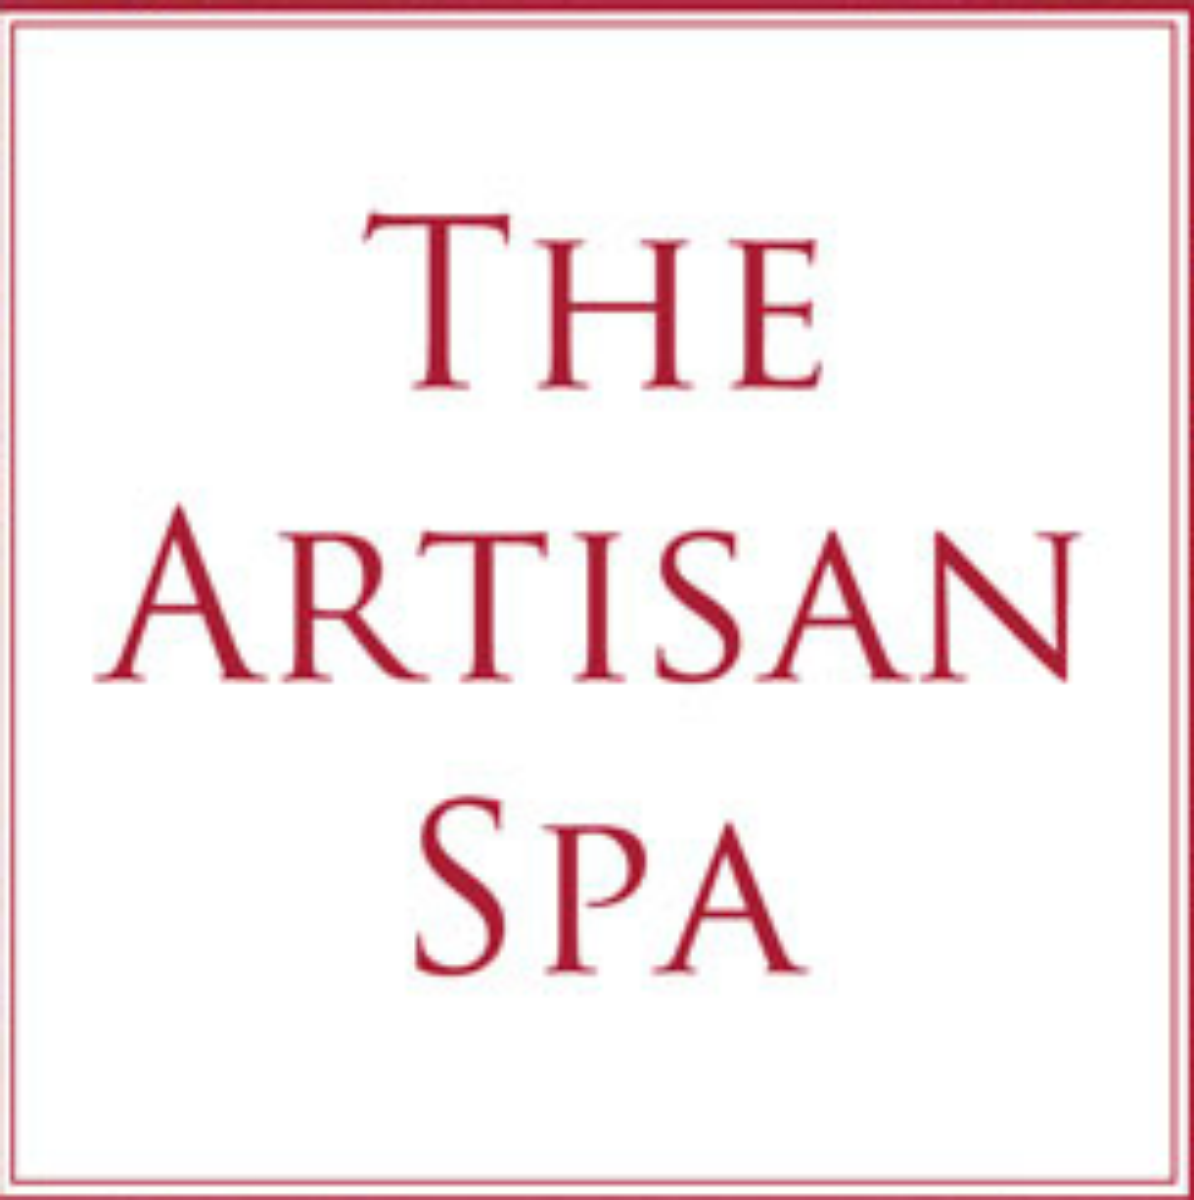 Mothers day ideas and spa gifts the artisan spa review for Salon artisanal